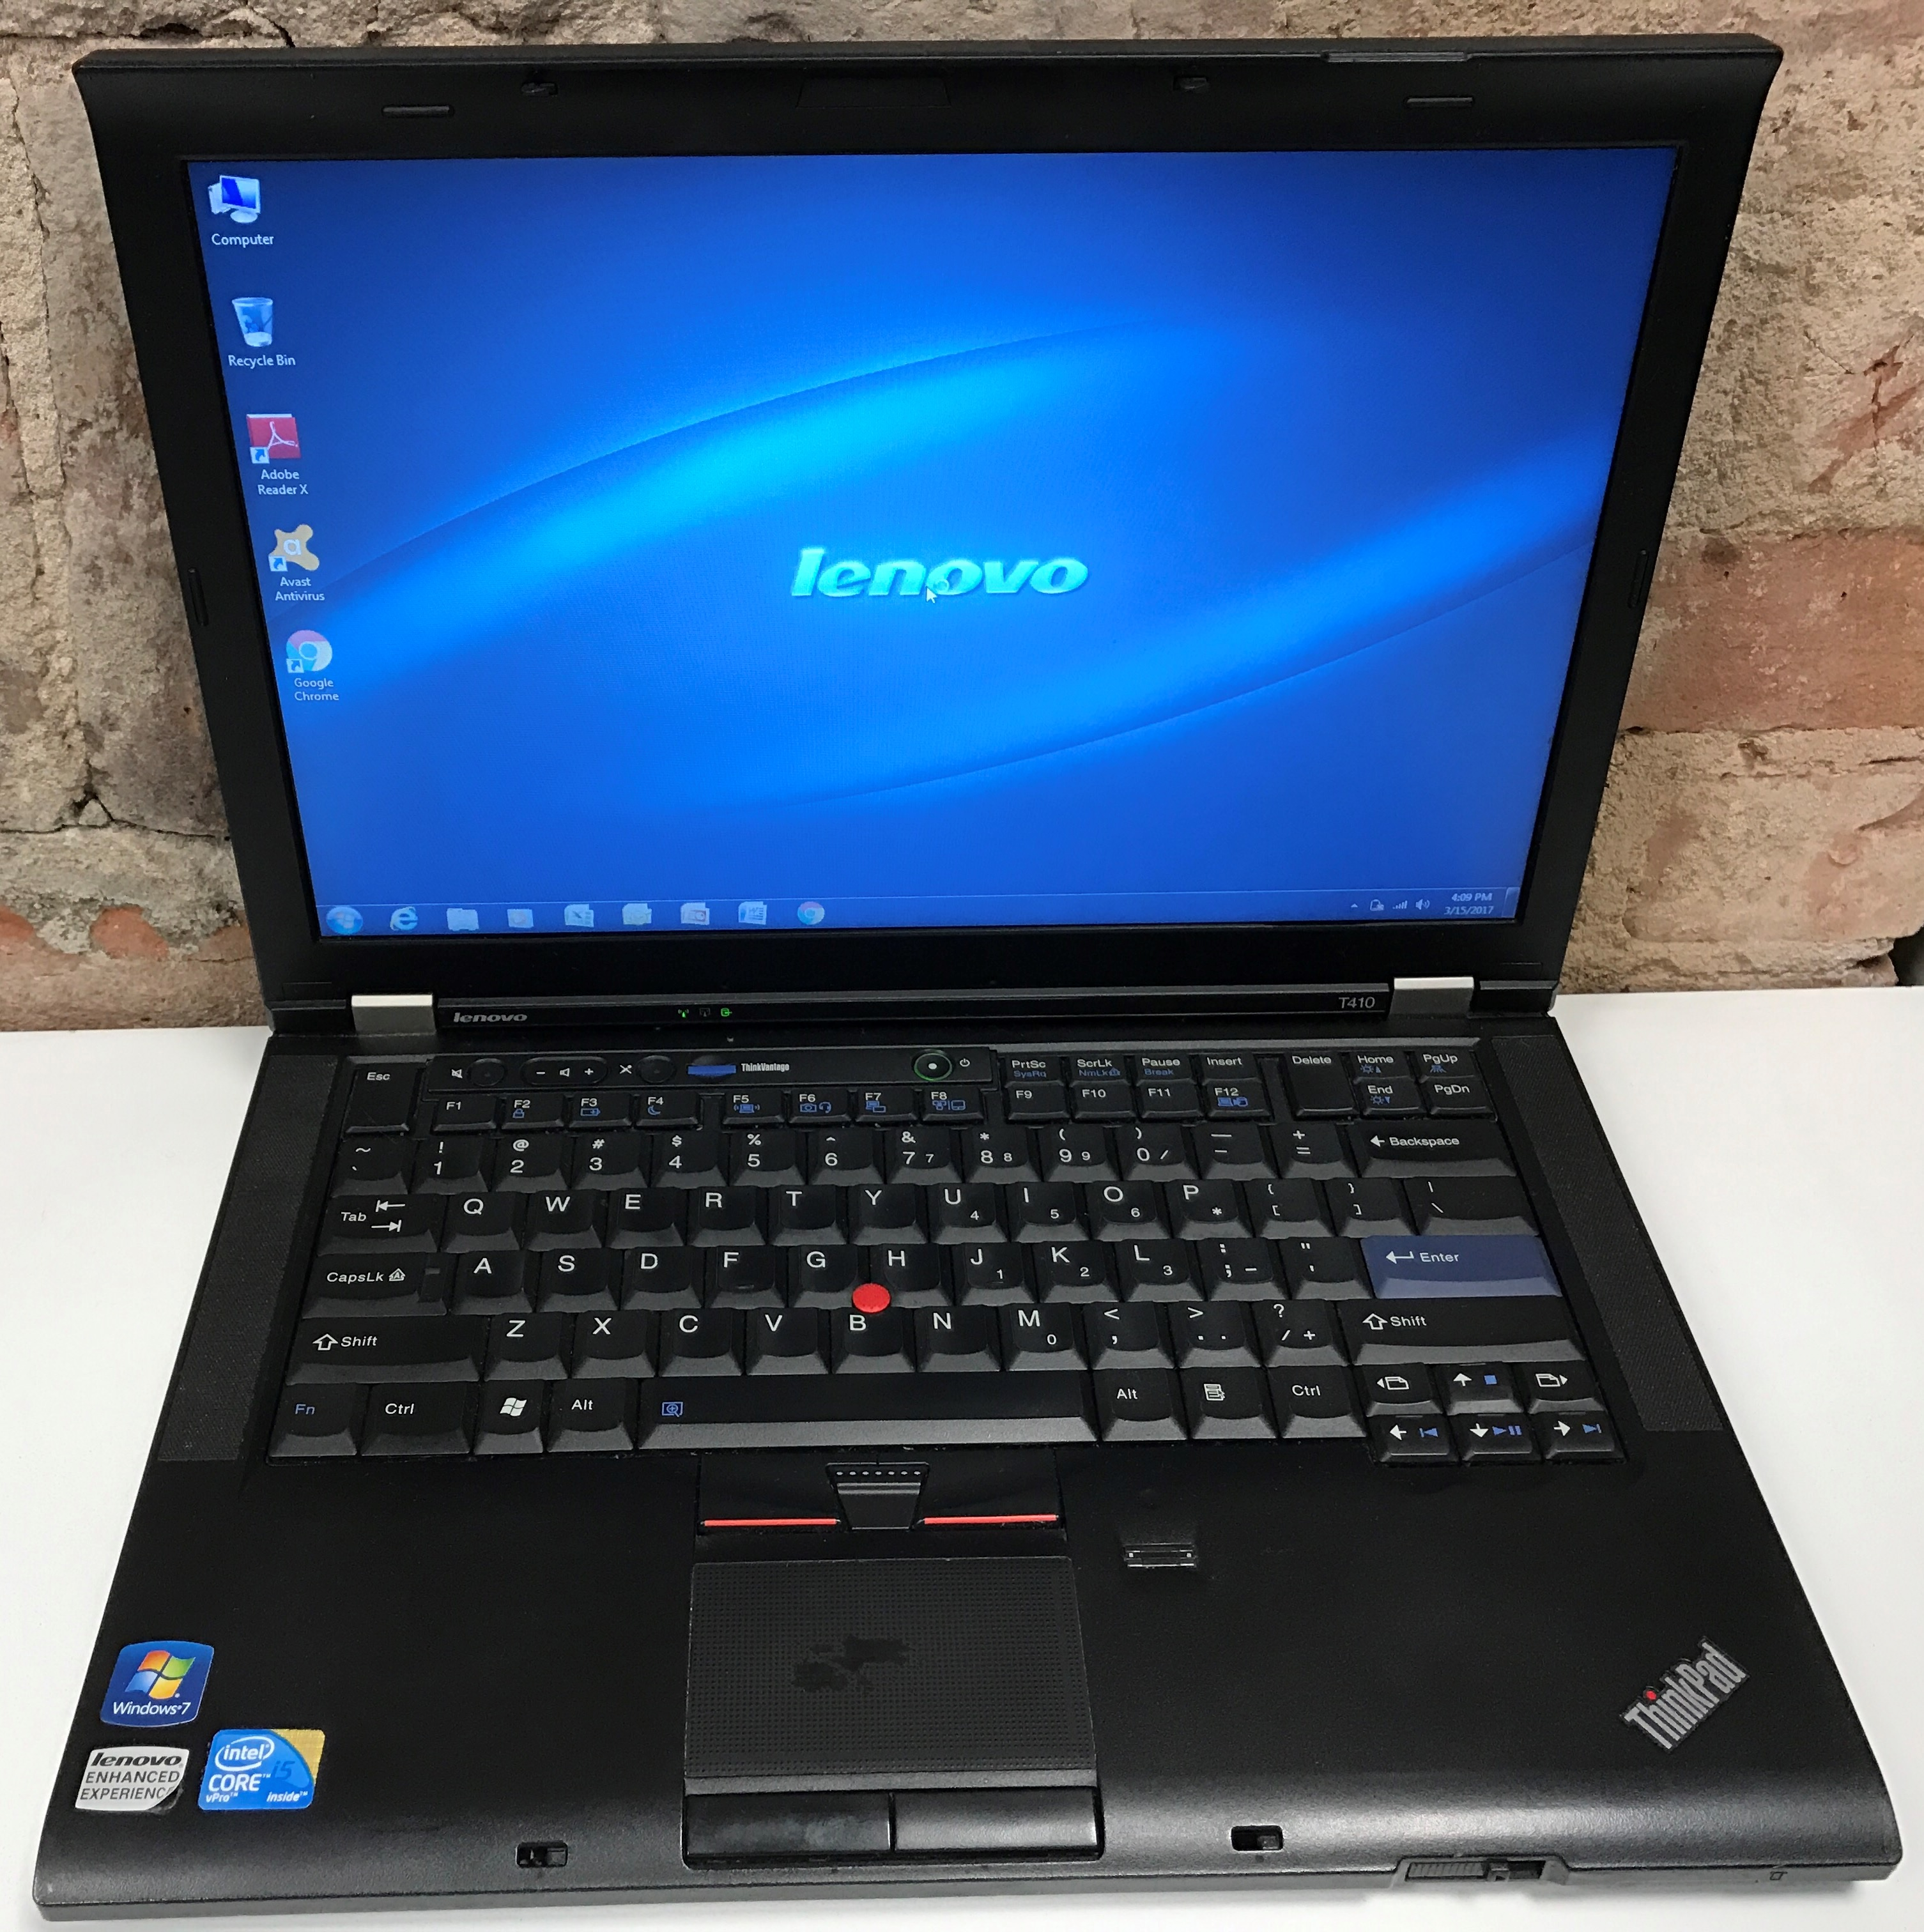 Best Place To Buy Used Refurbished Laptops In Nyc